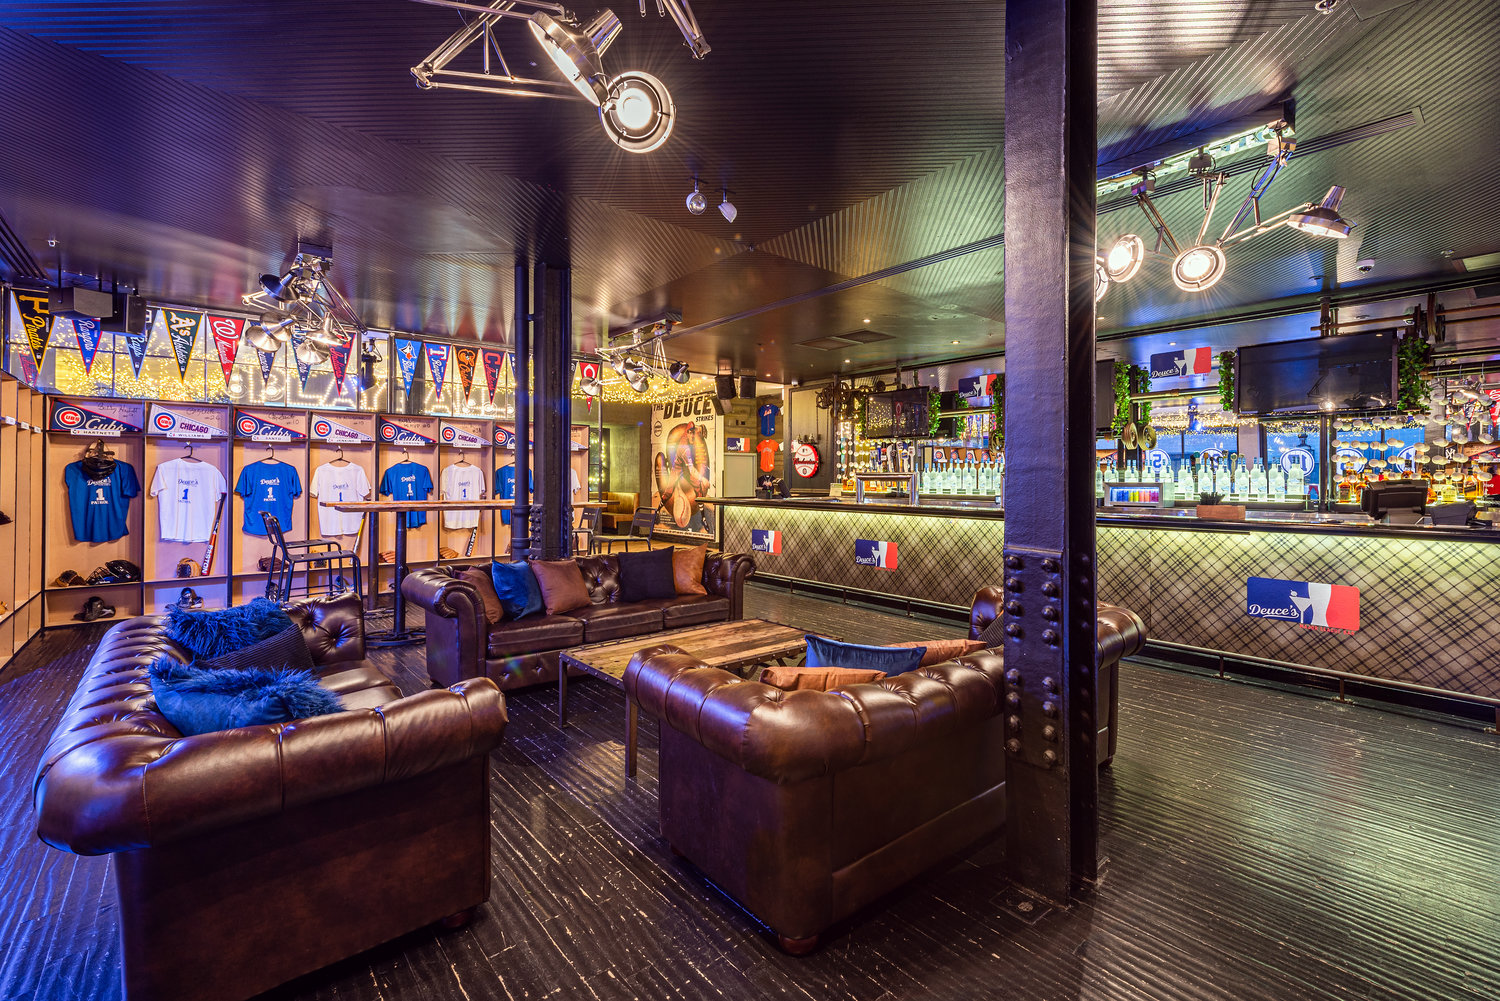 Locker Room event space at Deuce's Major League Bar in Chicago, Chicagoland Area